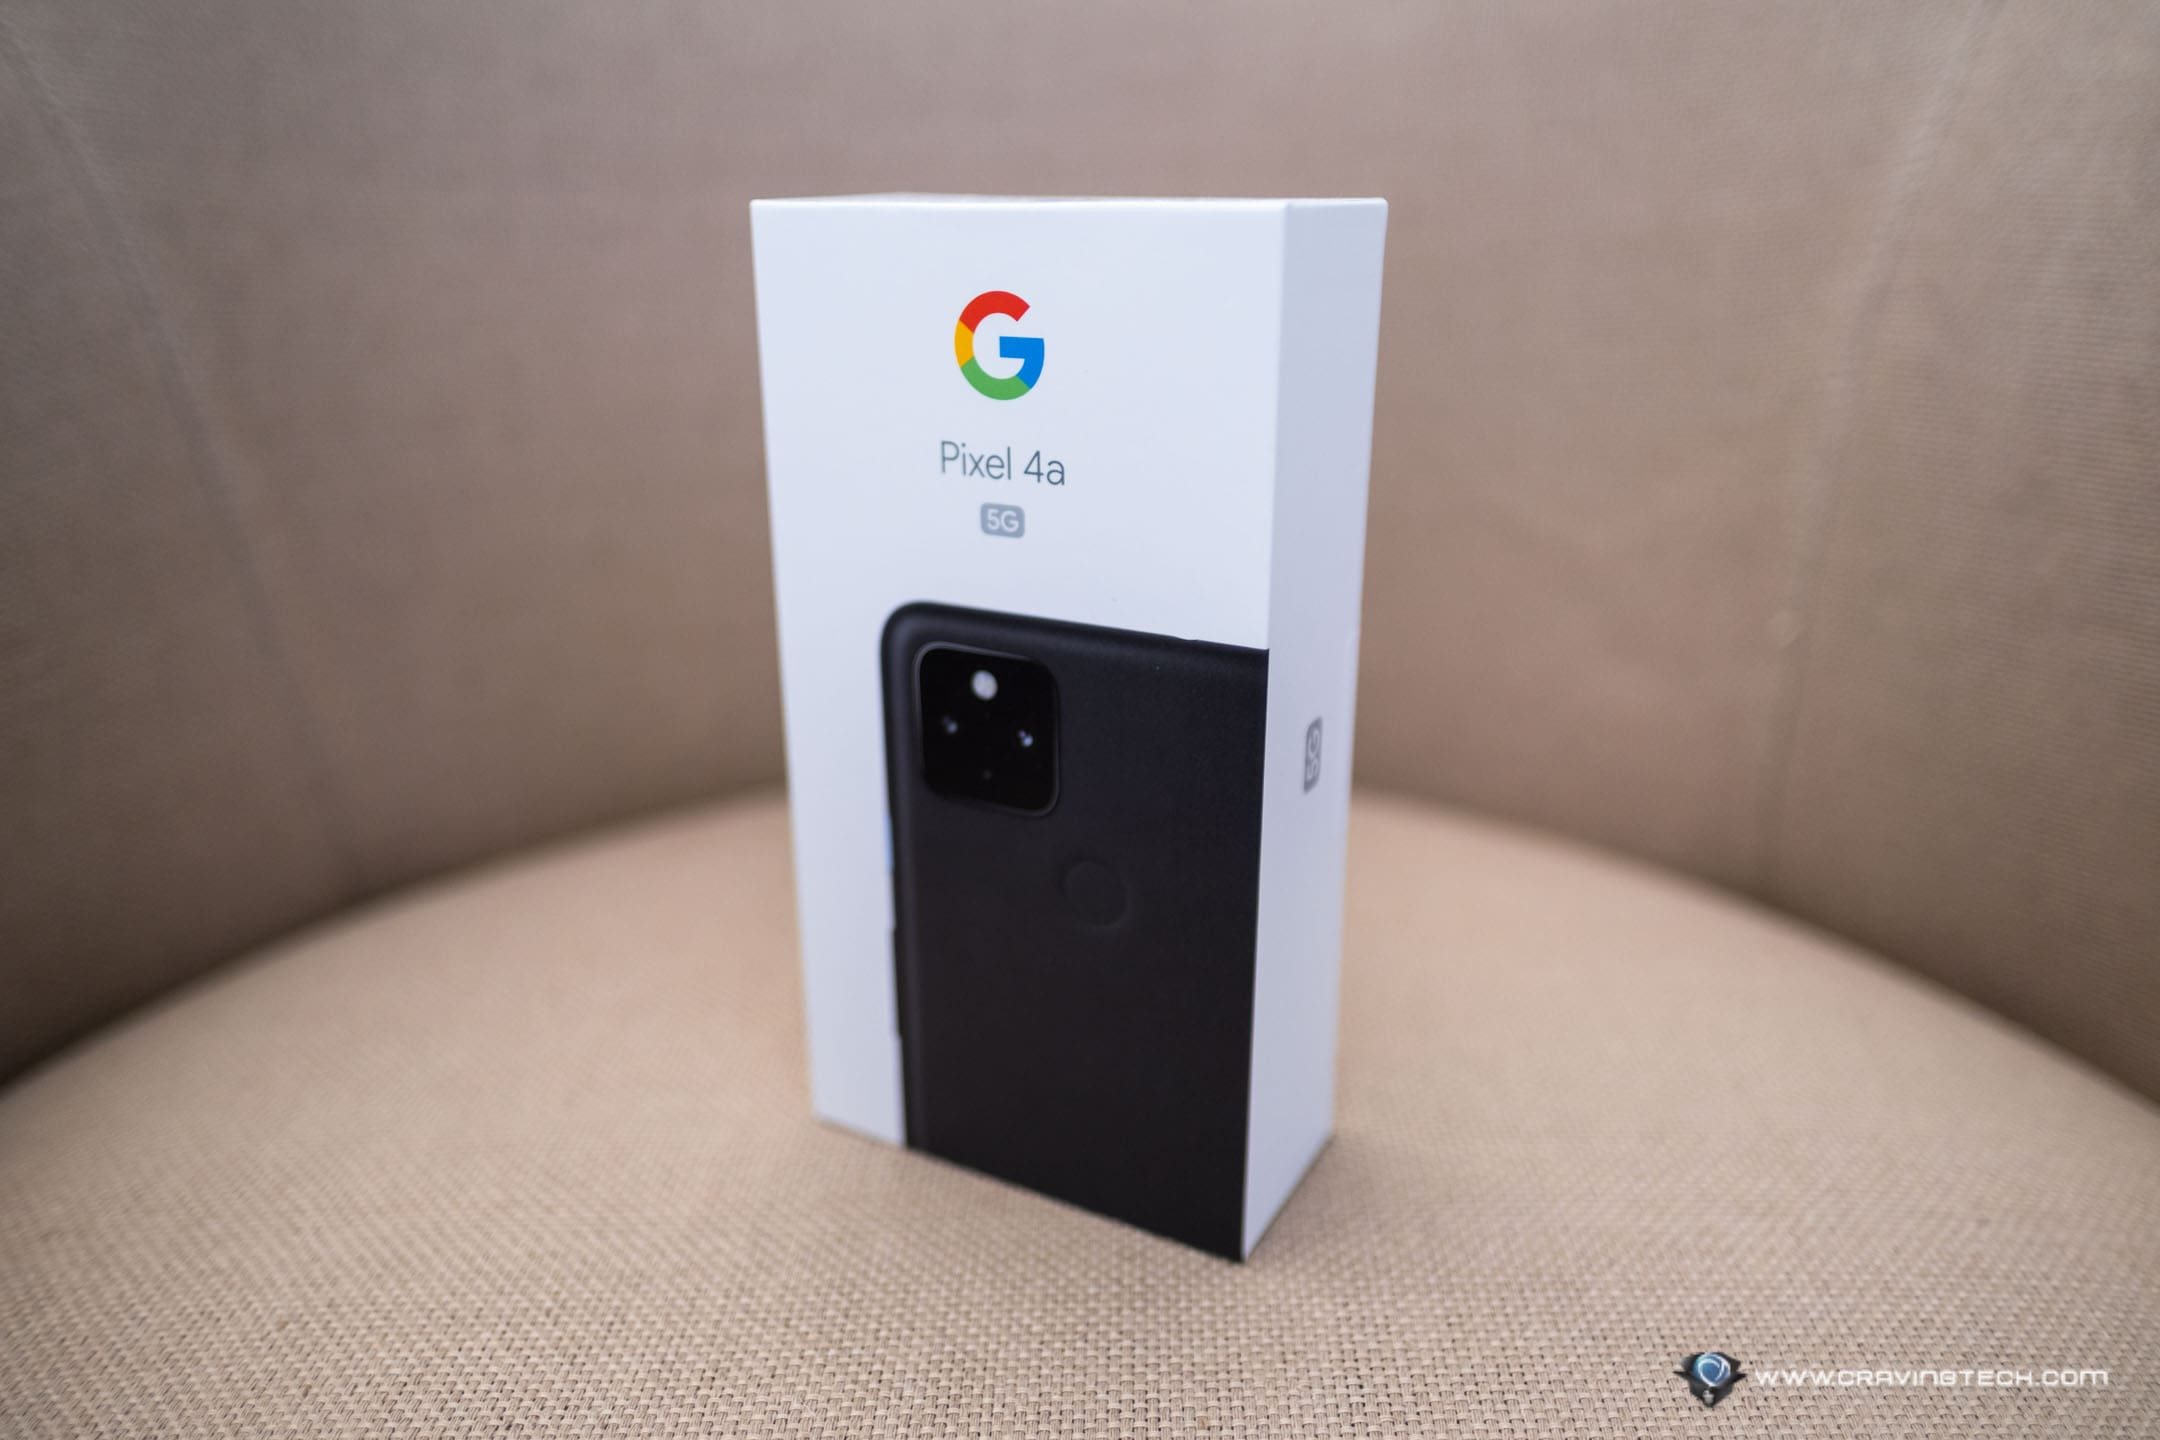 Should you grab a Google Pixel 4a with 5G?